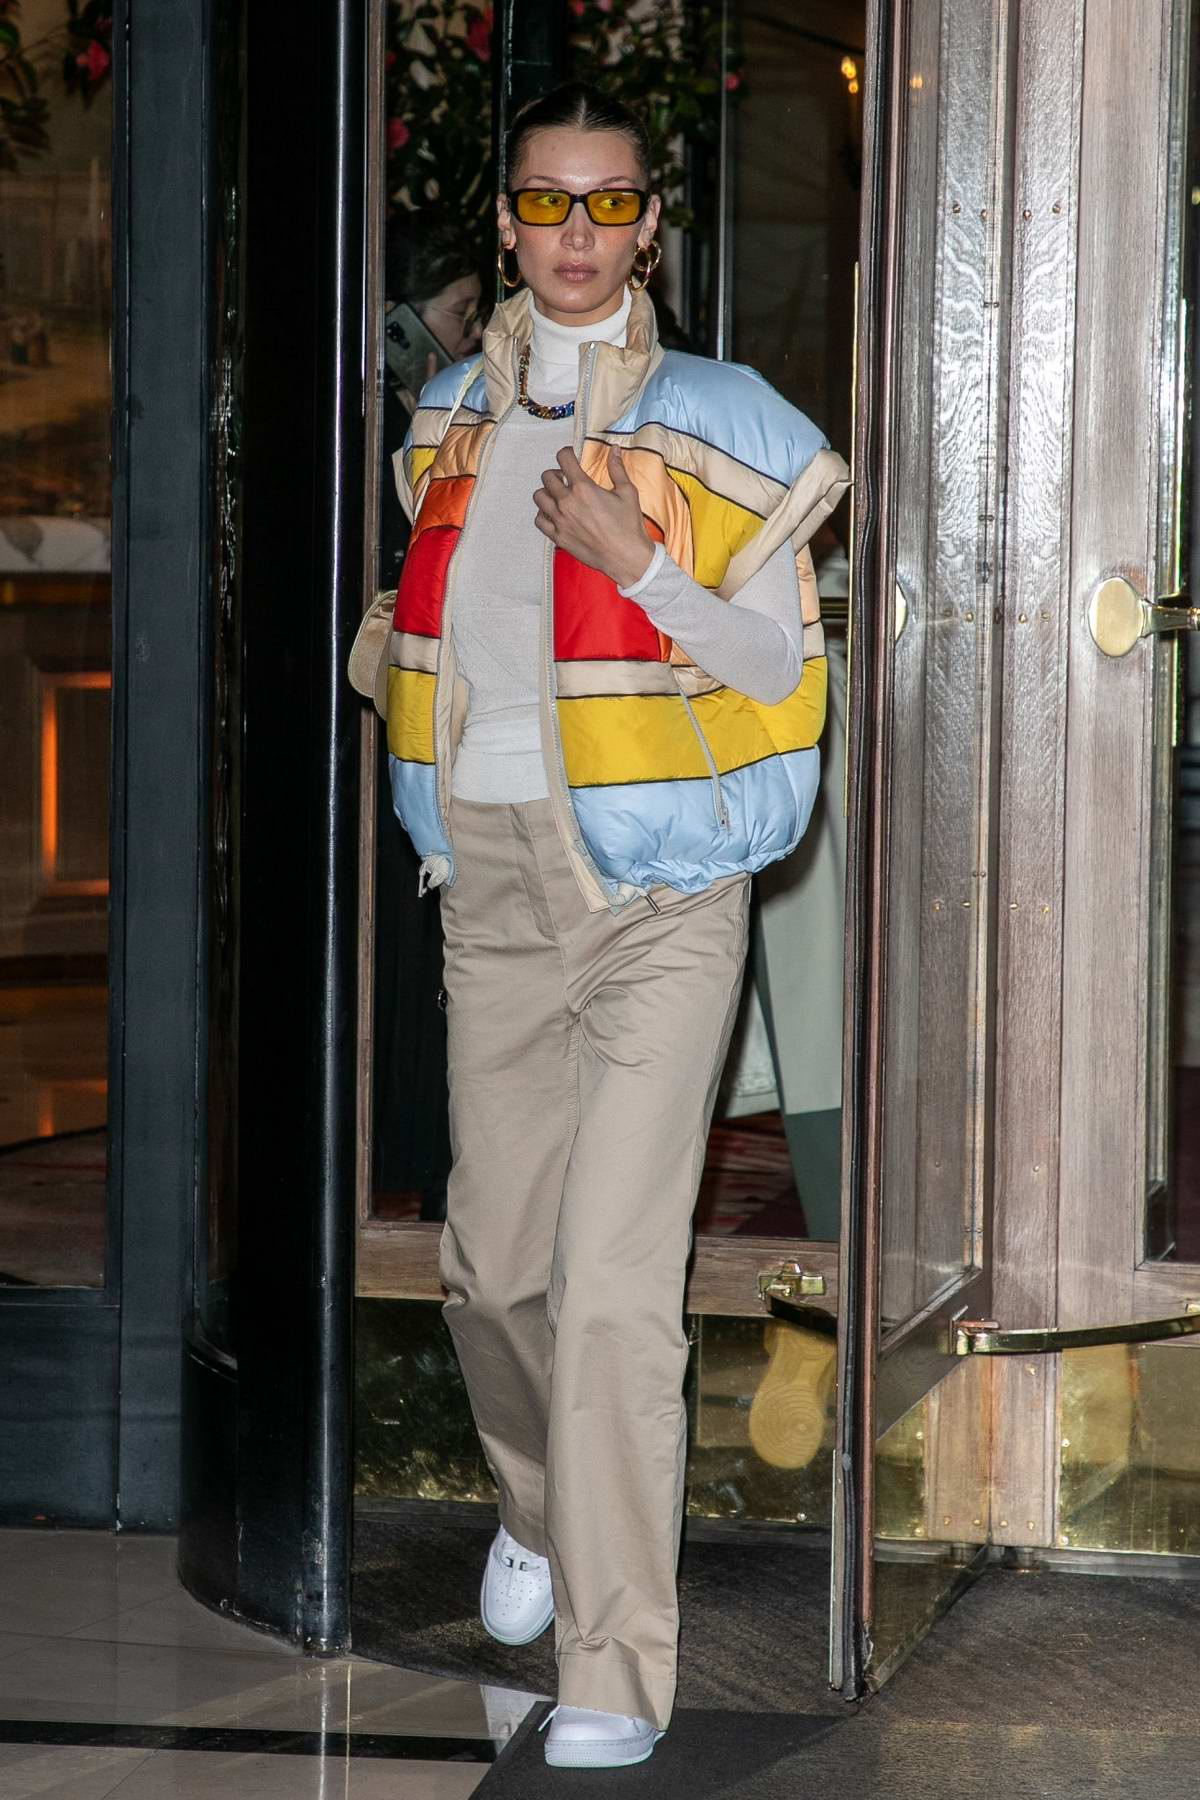 Bella Hadid sports a multi-colored jacket as she steps out during Paris Fashion Week in Paris, France